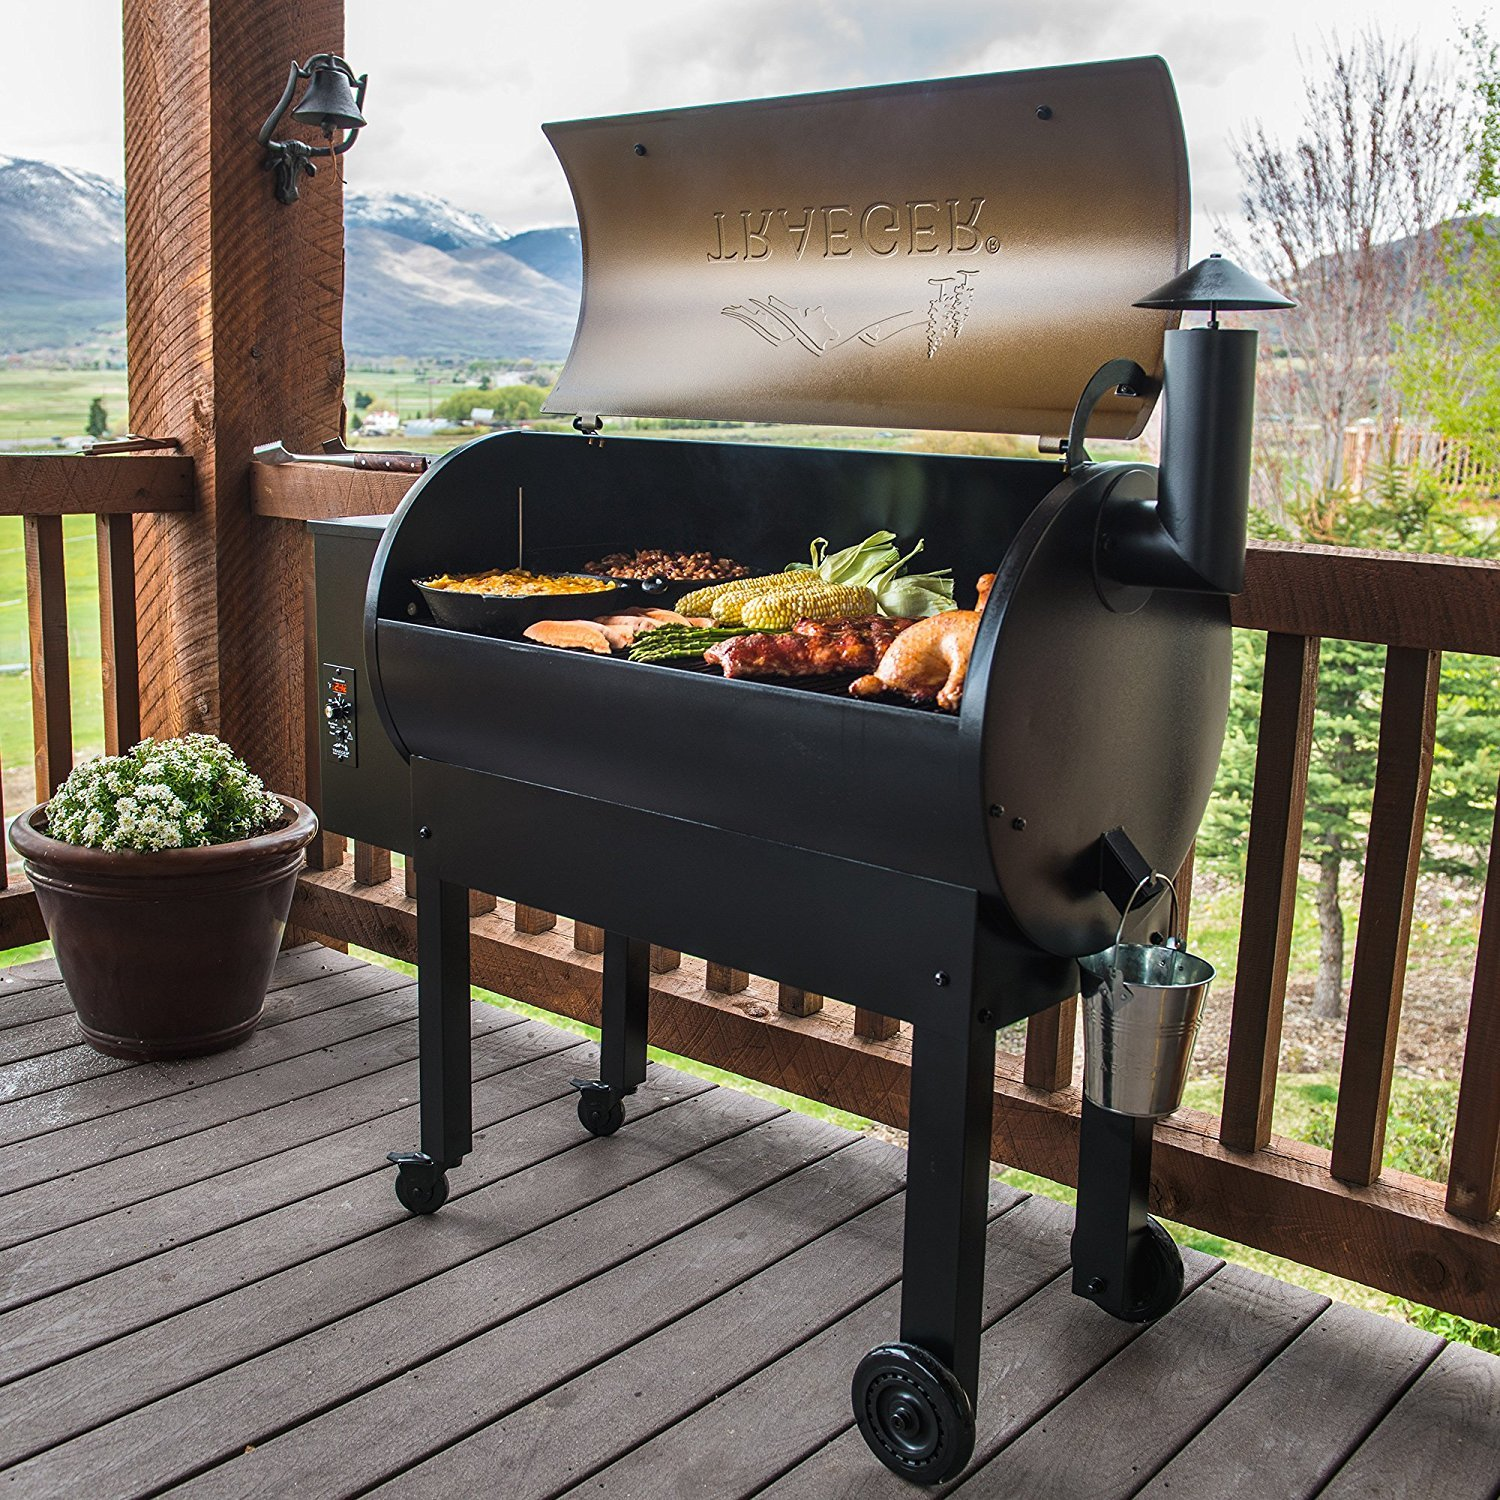 Traeger Texas Elite 34 Grill Review and Rating